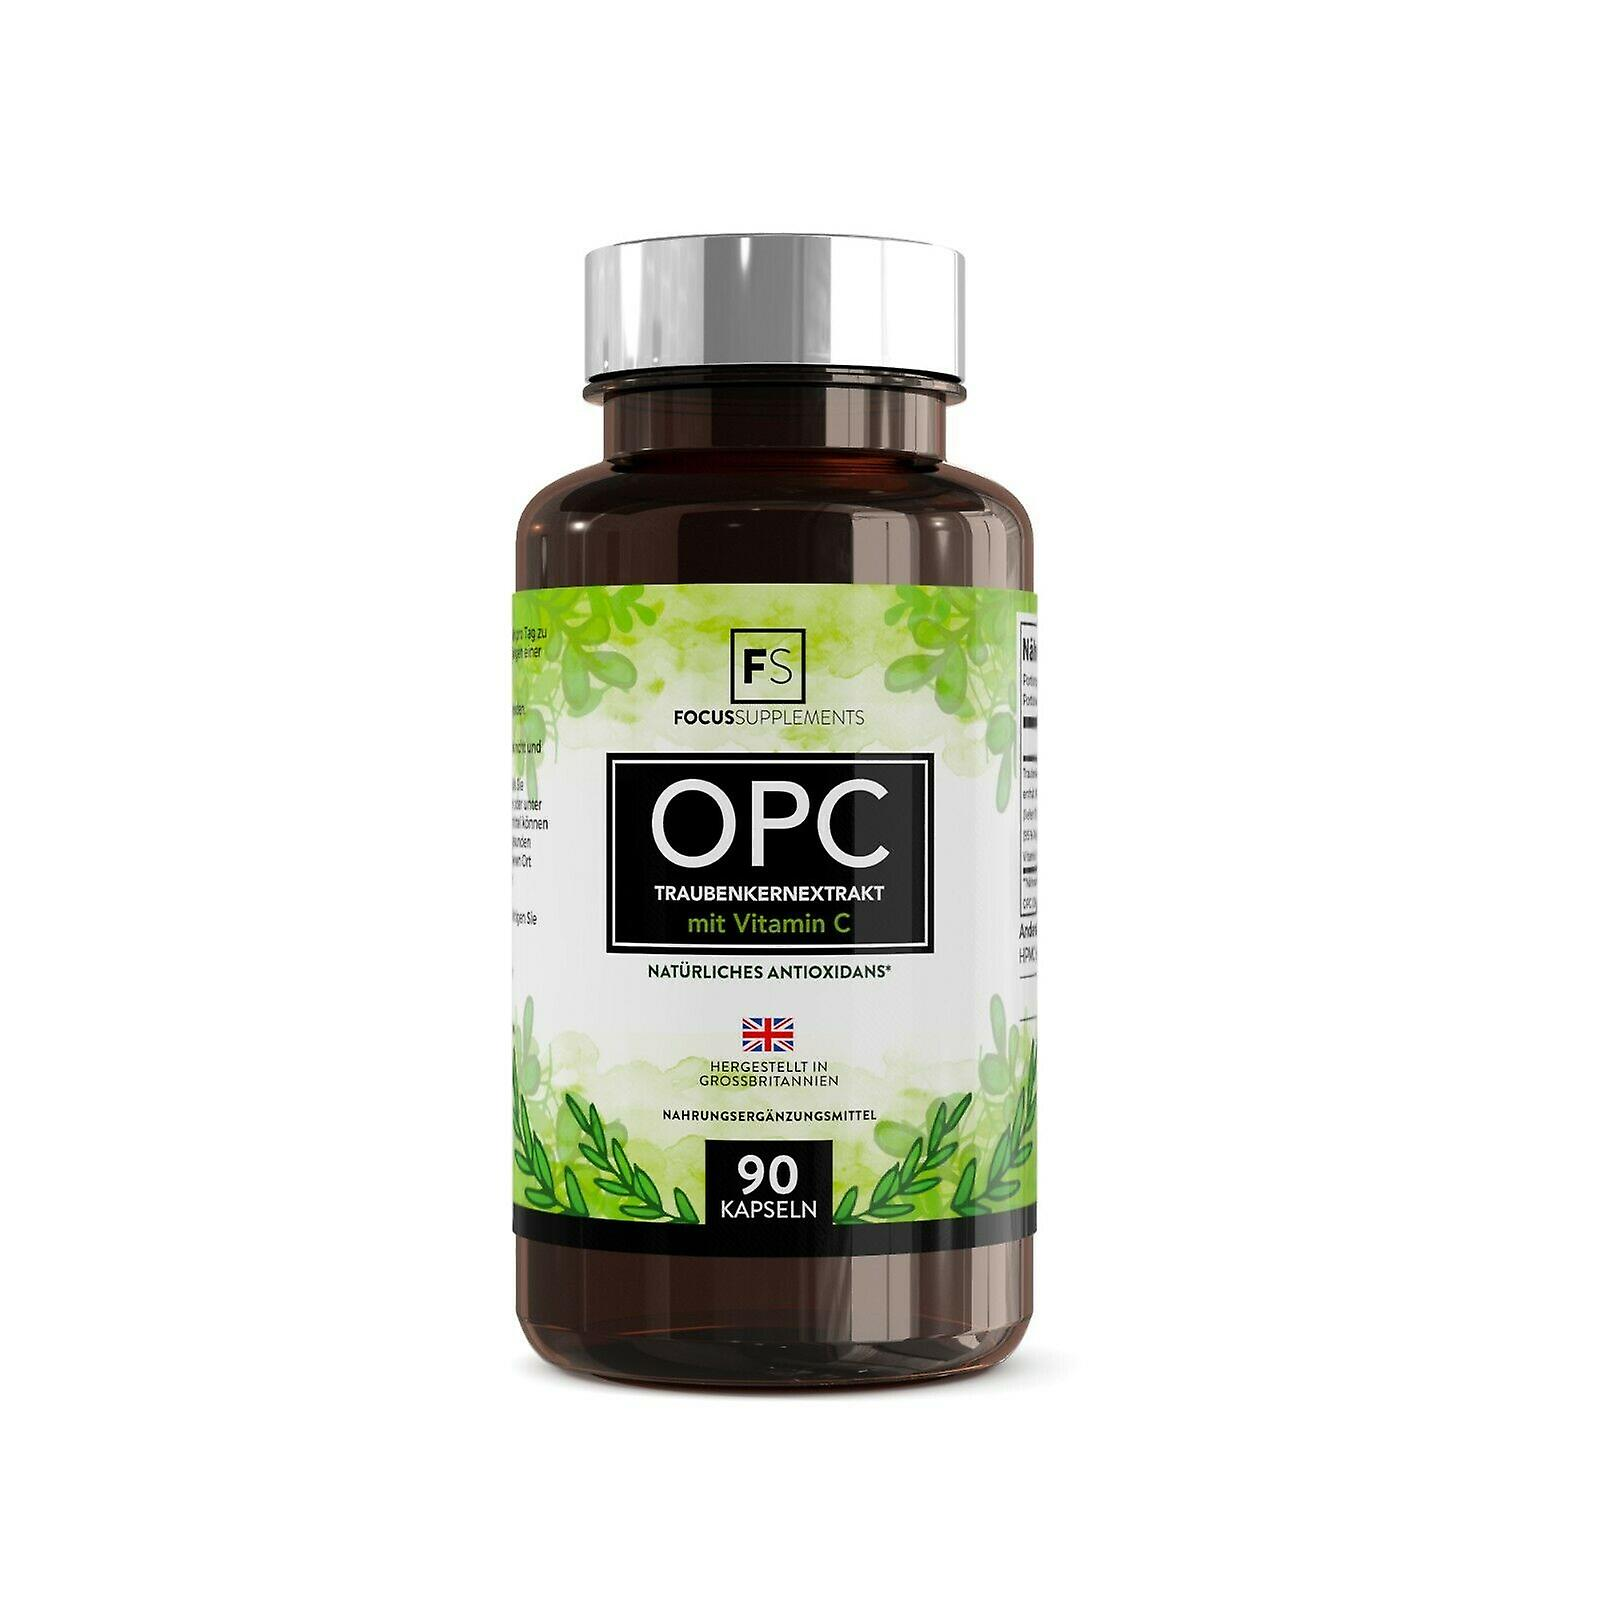 Focus Supplements Grapeseed Extract (OPC) with Vitamin C (300mg) Capsules